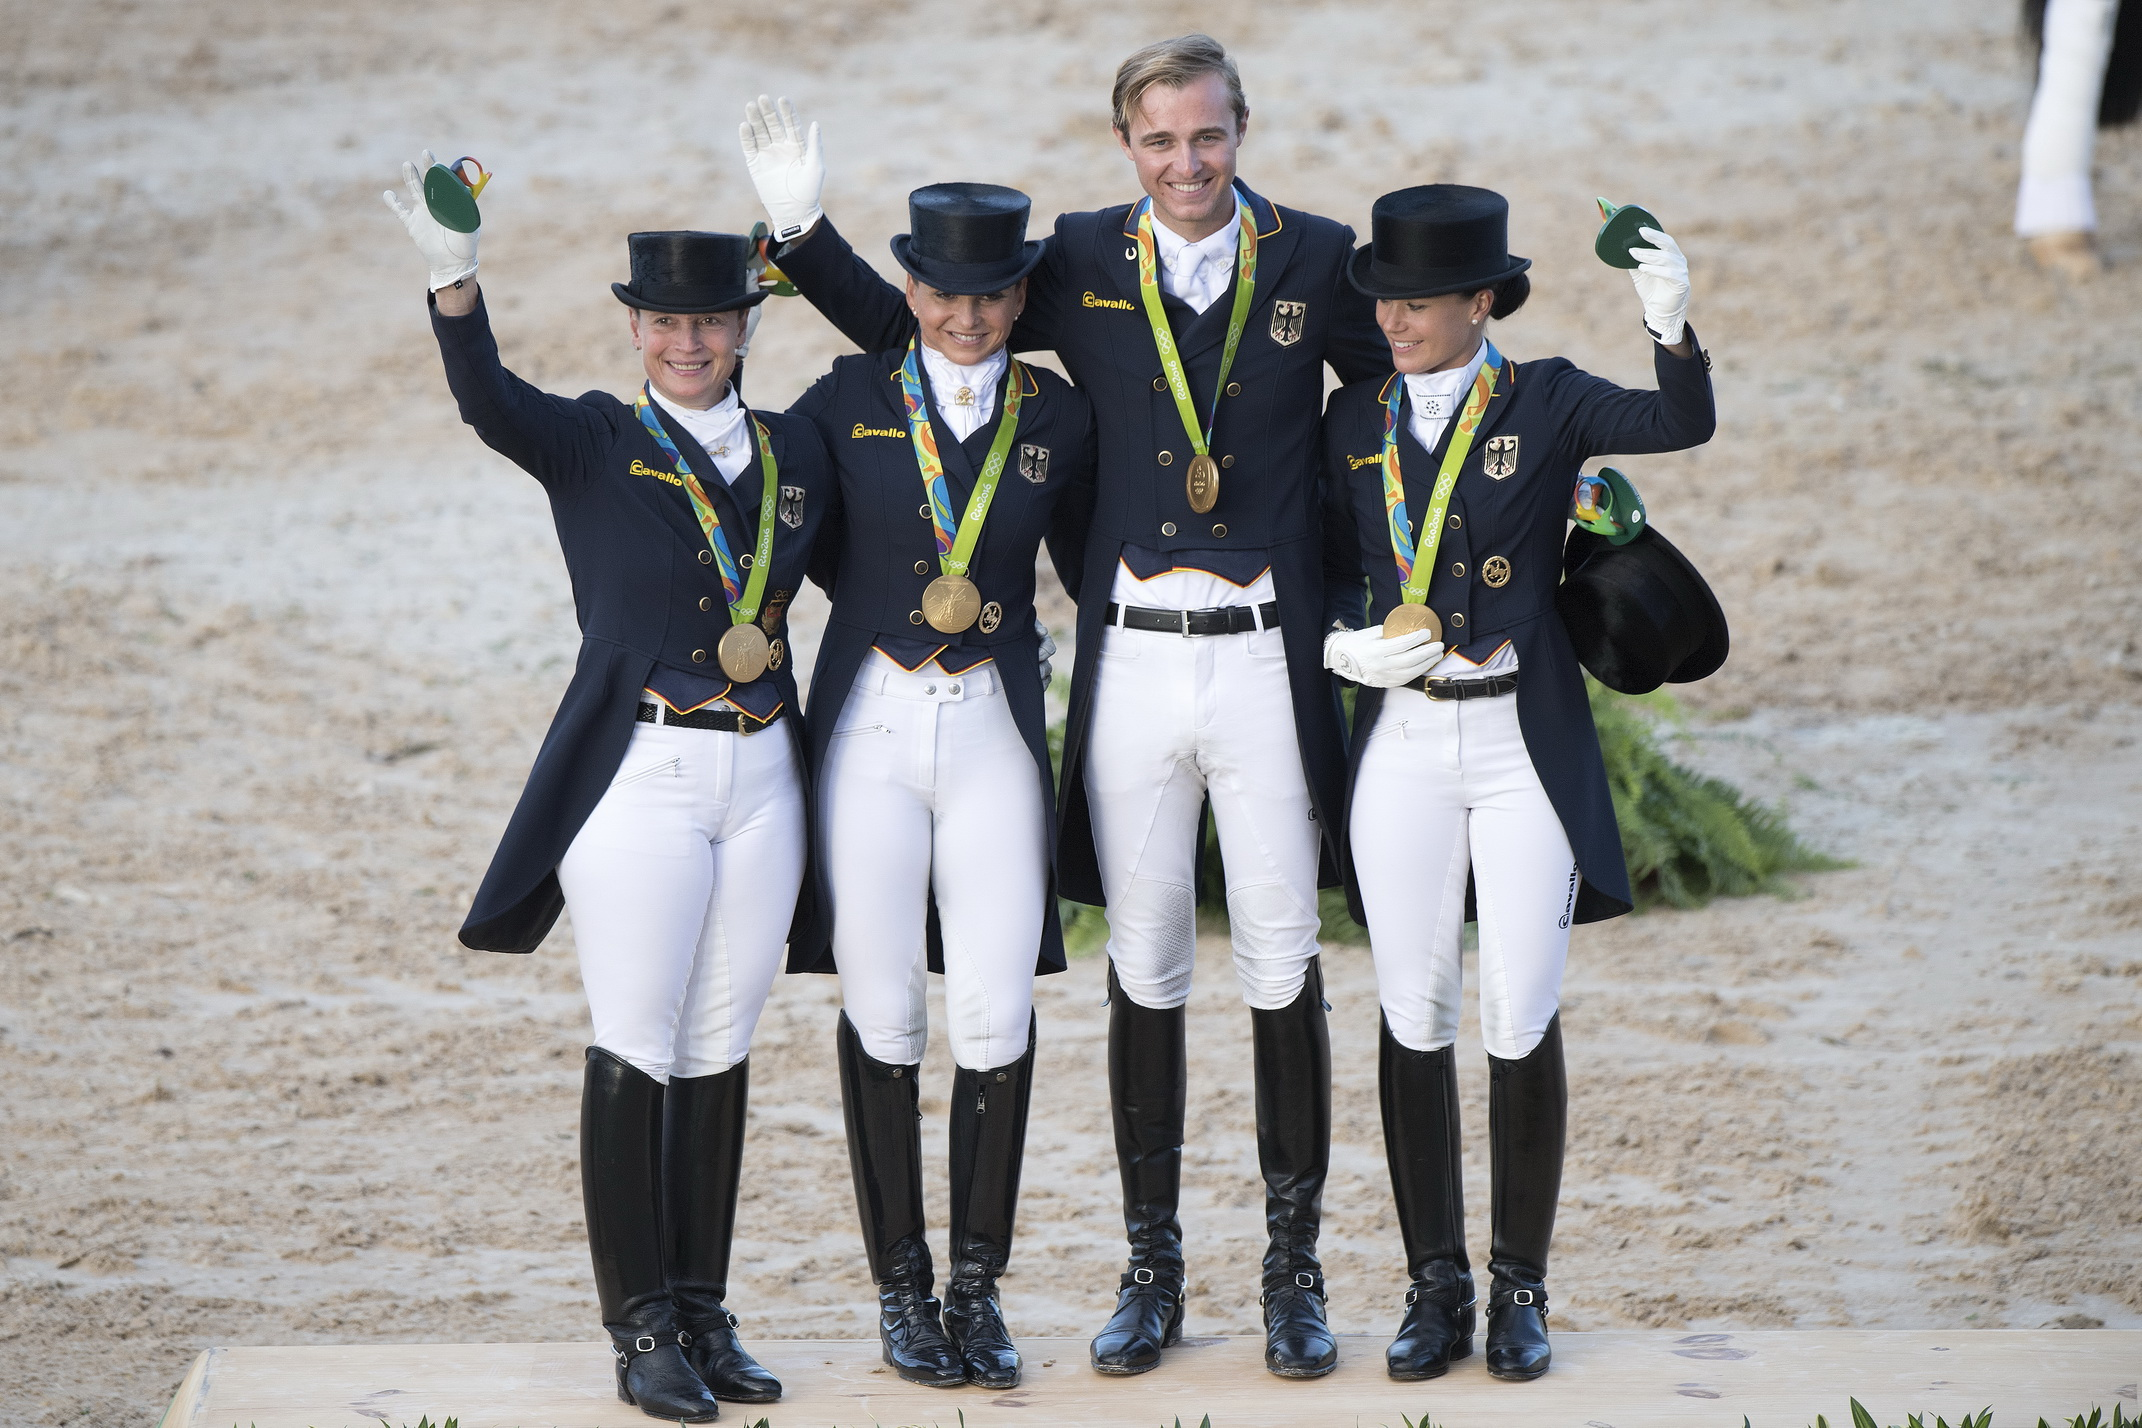 Thumbnail for Normal order restored as Germany takes Olympic Dressage team gold once again